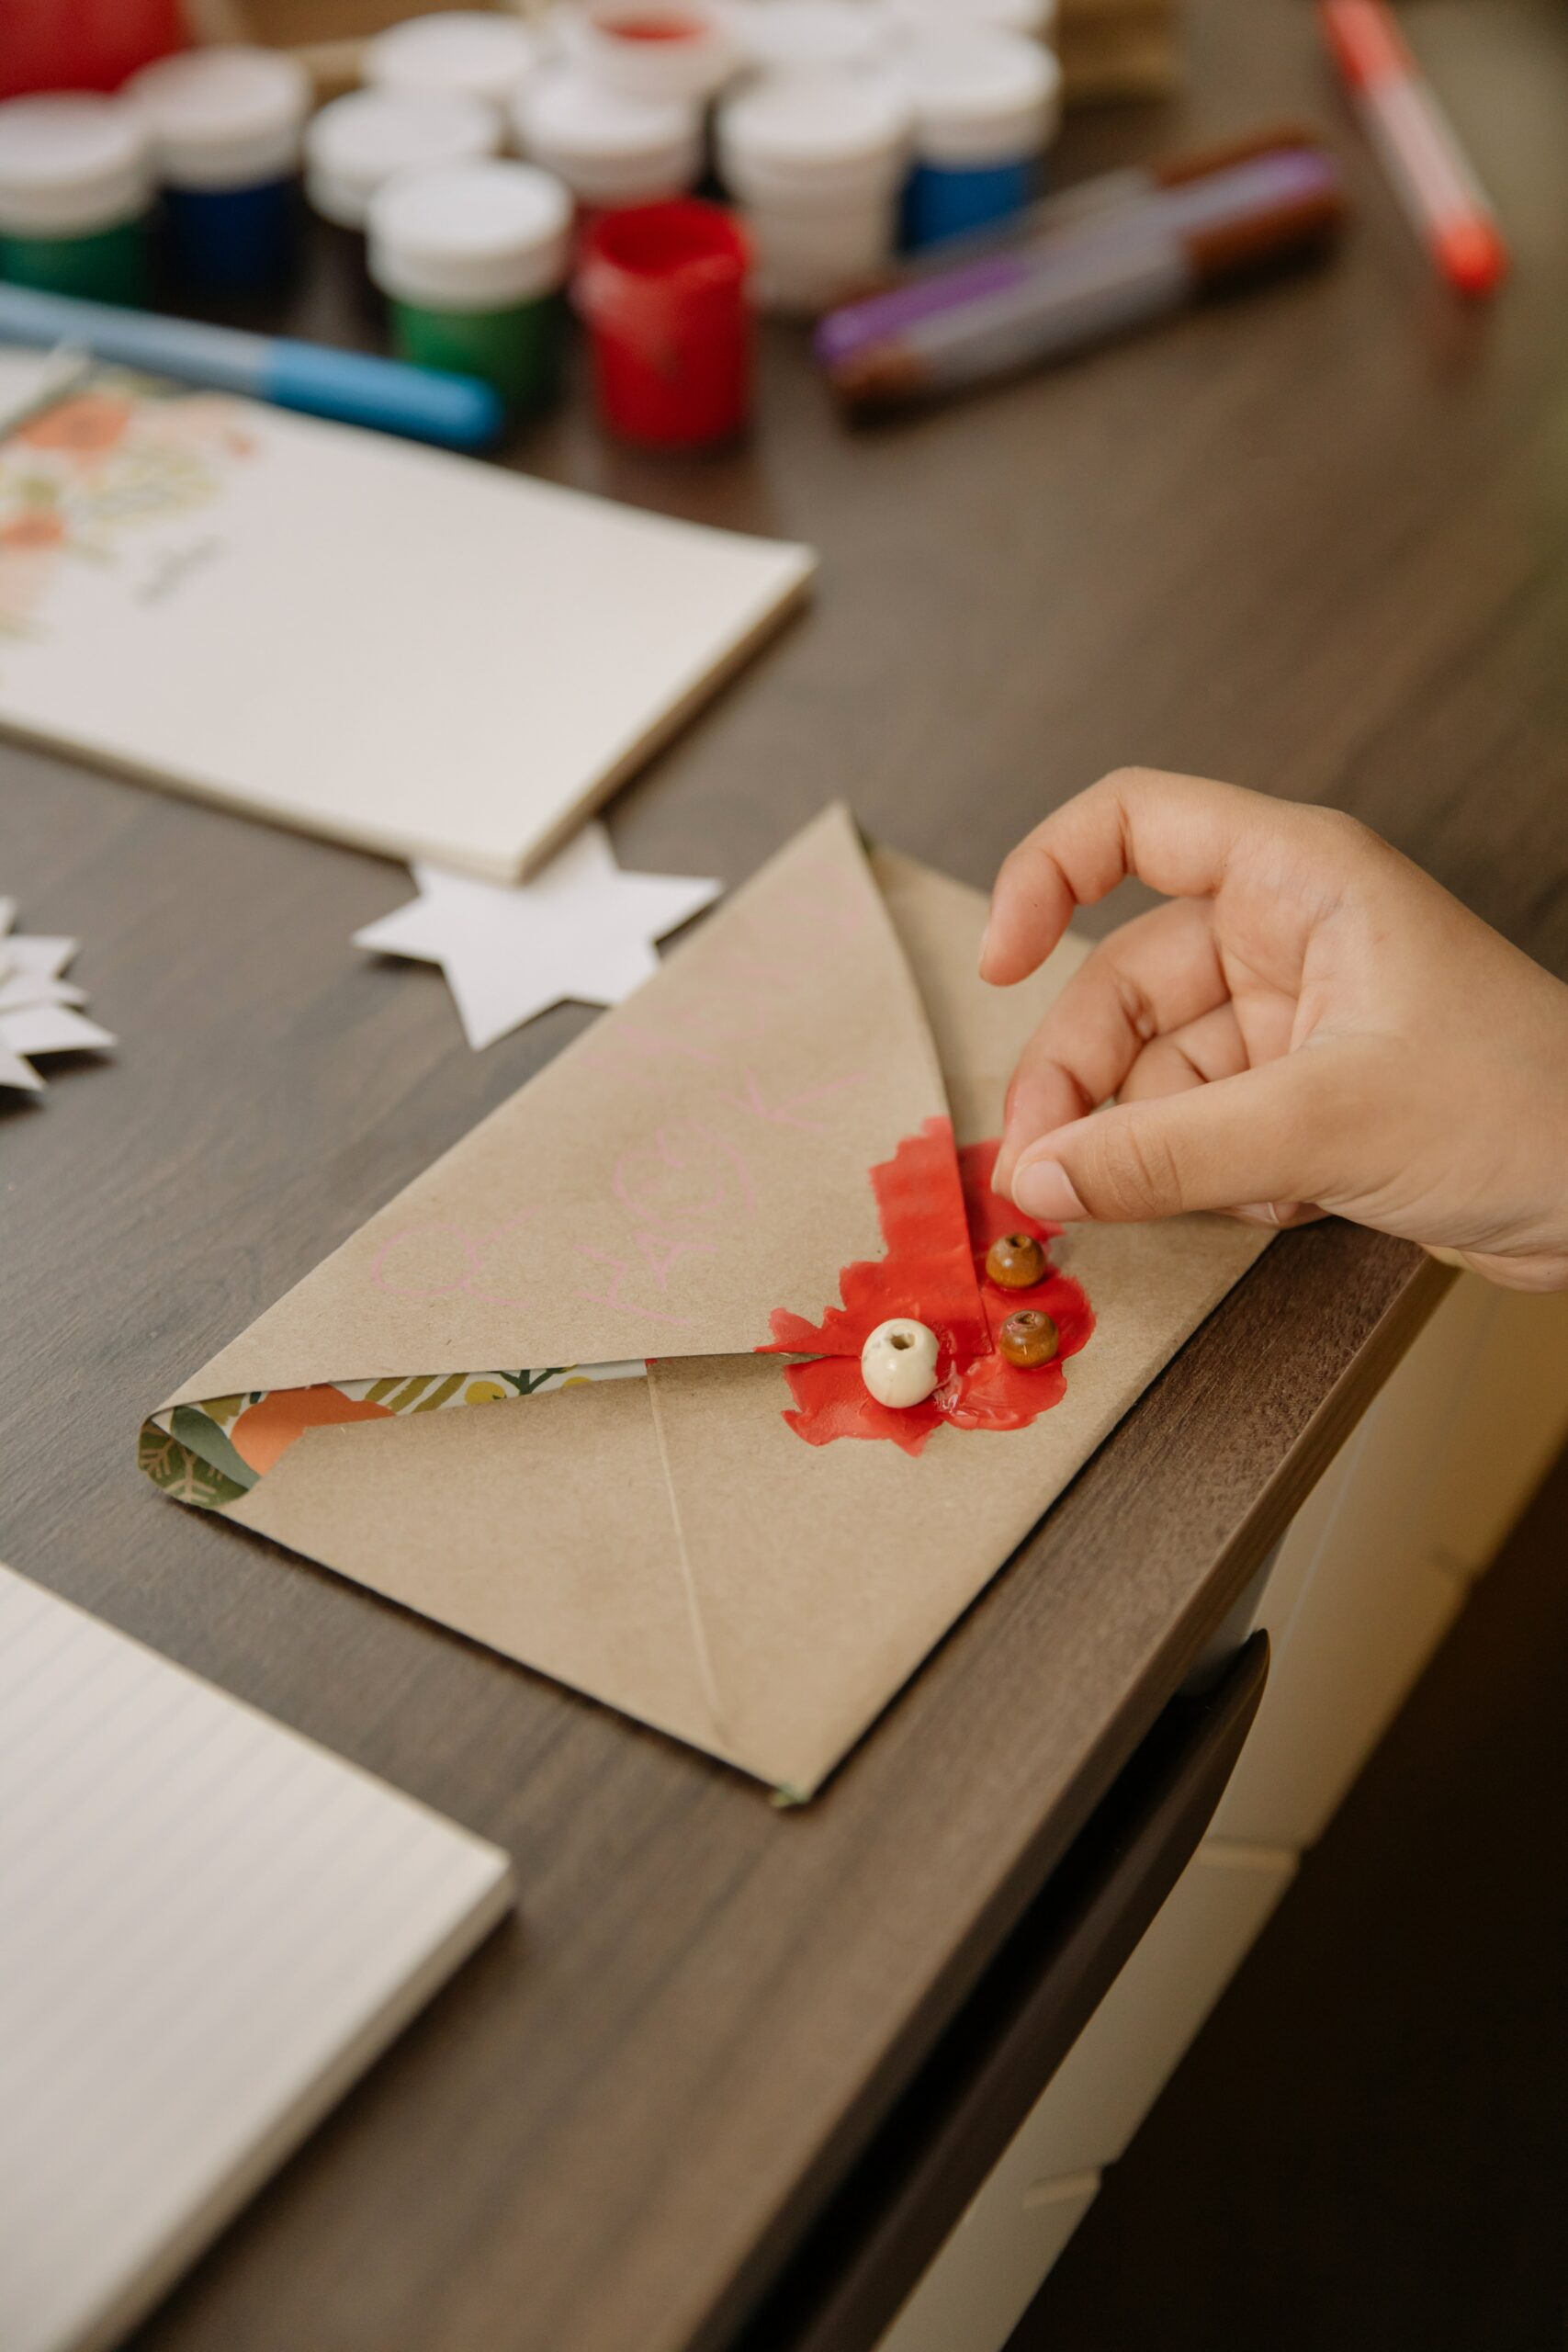 A small hand glues a bead on to a hand-decorated brown envelope, with crafting supplies in the background - a great way of keeping in touch with kids